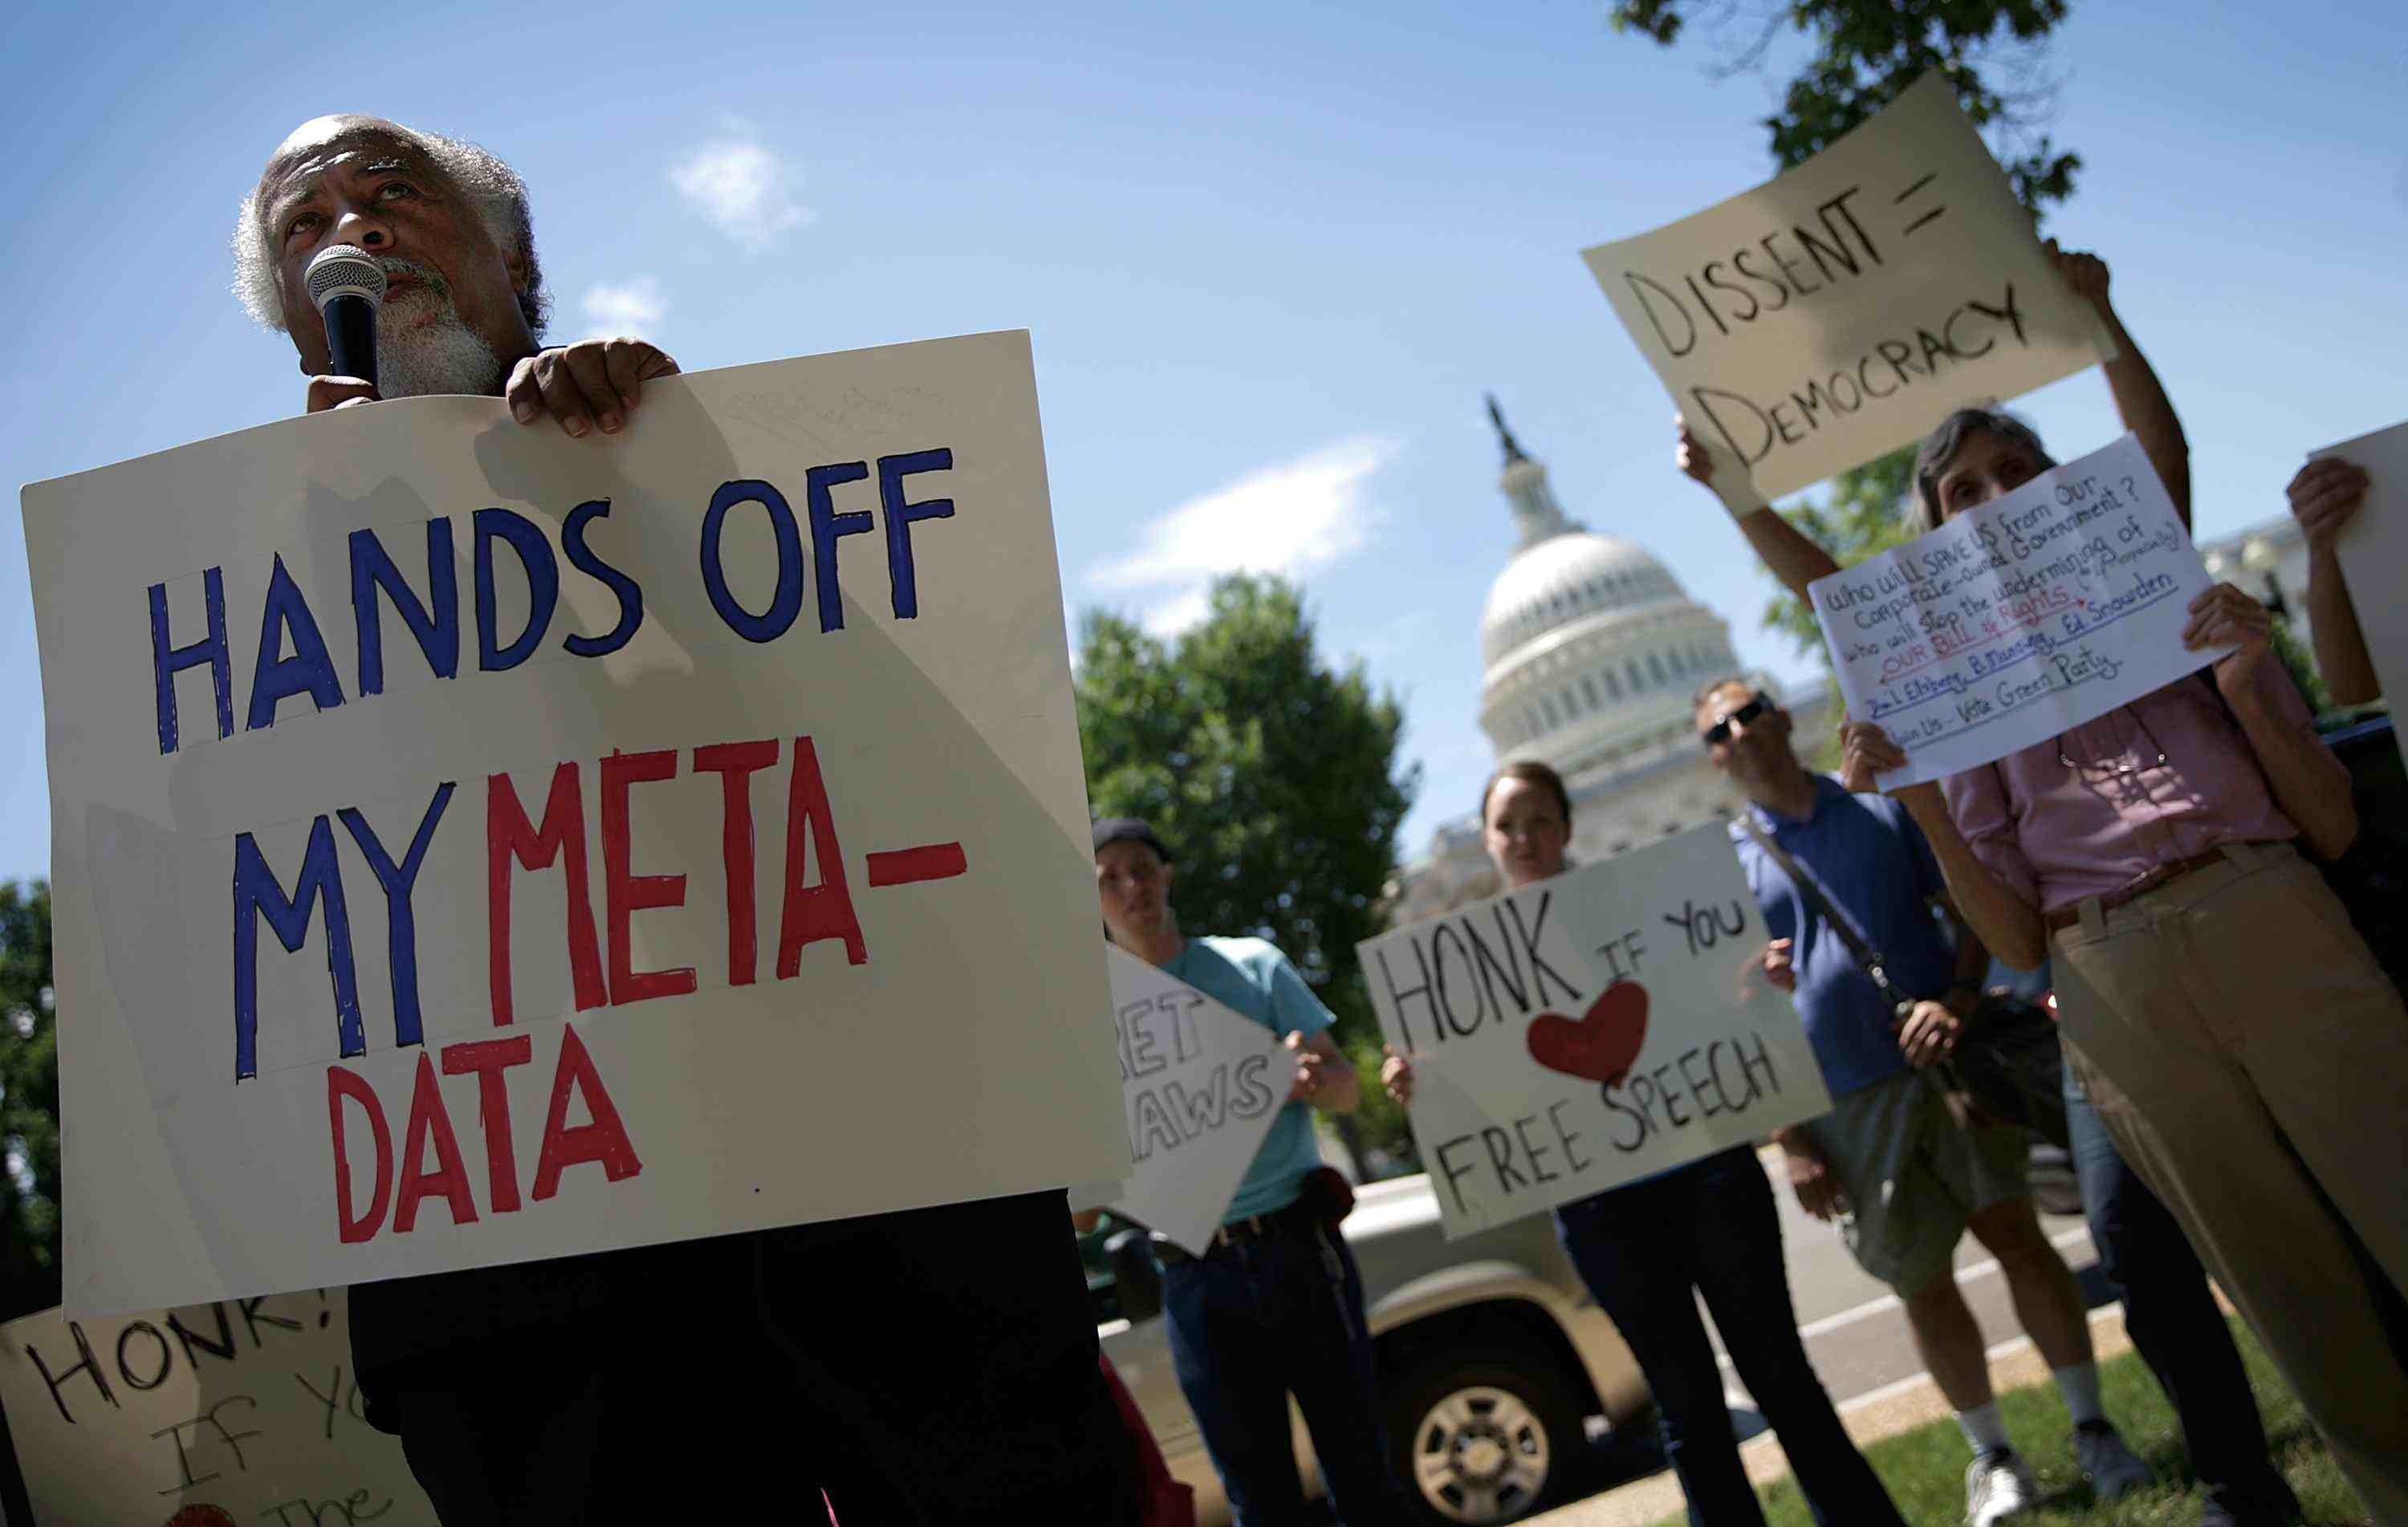 A rally outside the U.S. Capitol this month protests the National Security Agency's domestic surveillance program.